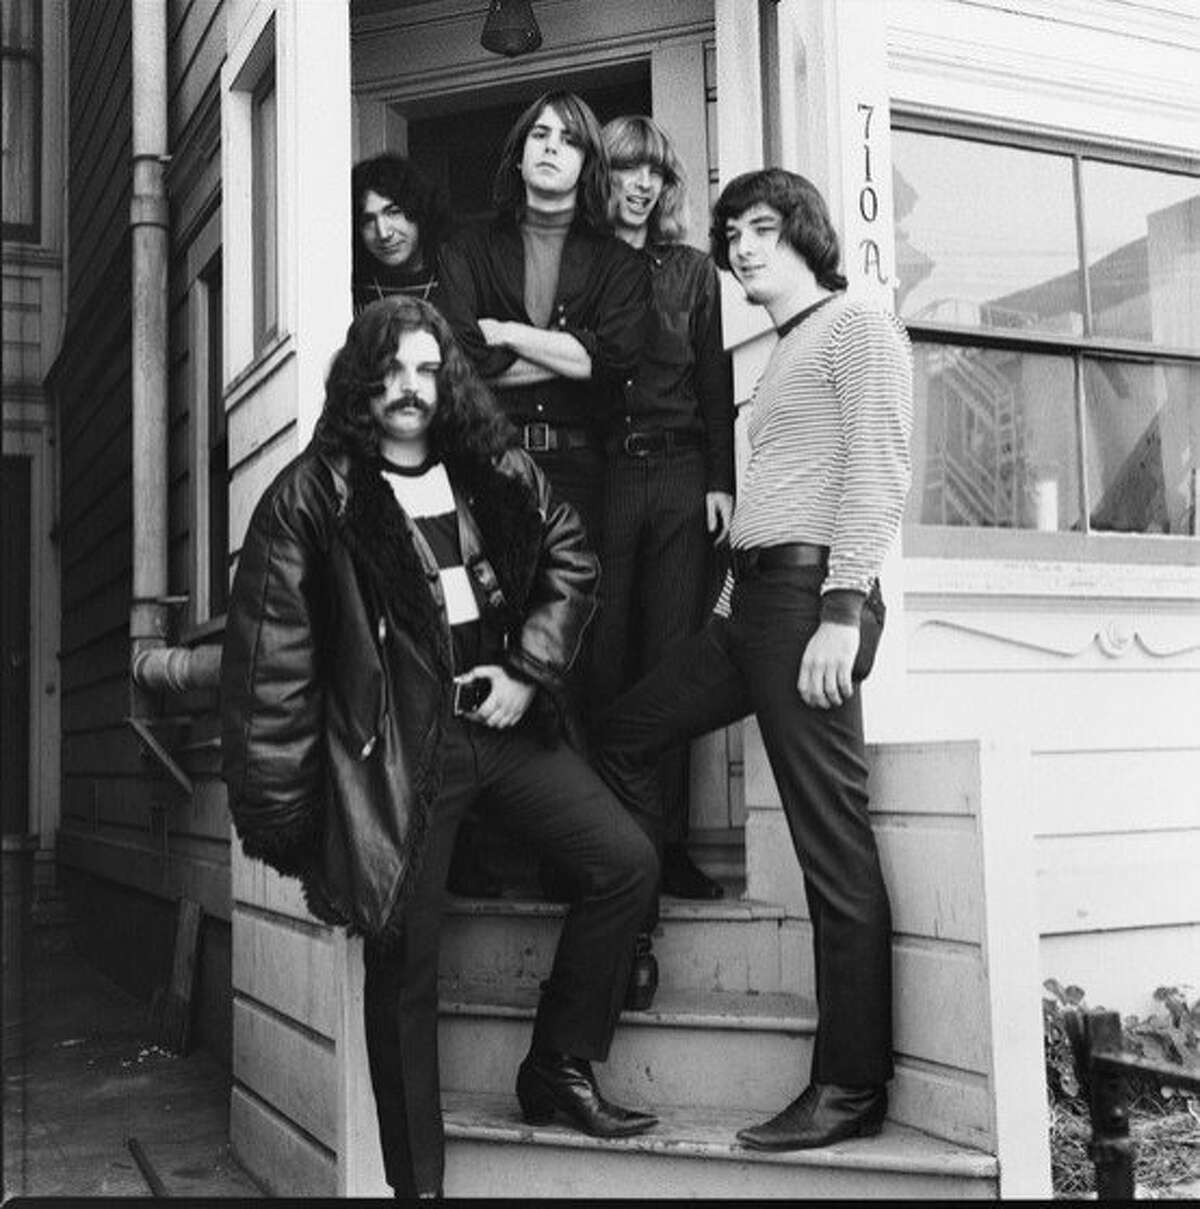 The Grateful Dead at their shared living space at 710 Ashbury St. The Grateful Dead Photo credit: Herb Greene